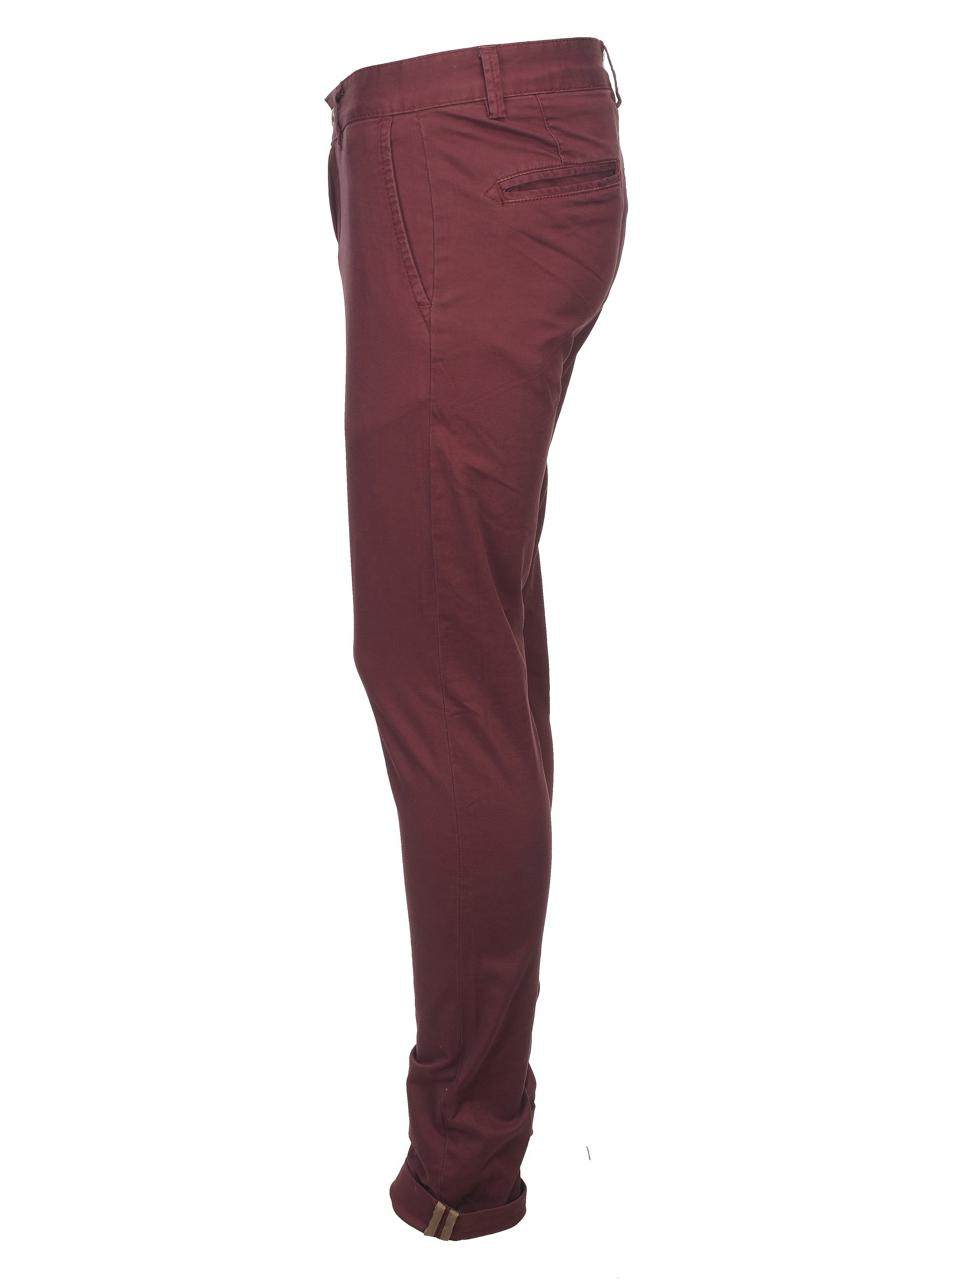 Pantalon-Crossby-Chino-bordeaux-pant-Rouge-44066-Neuf miniature 2